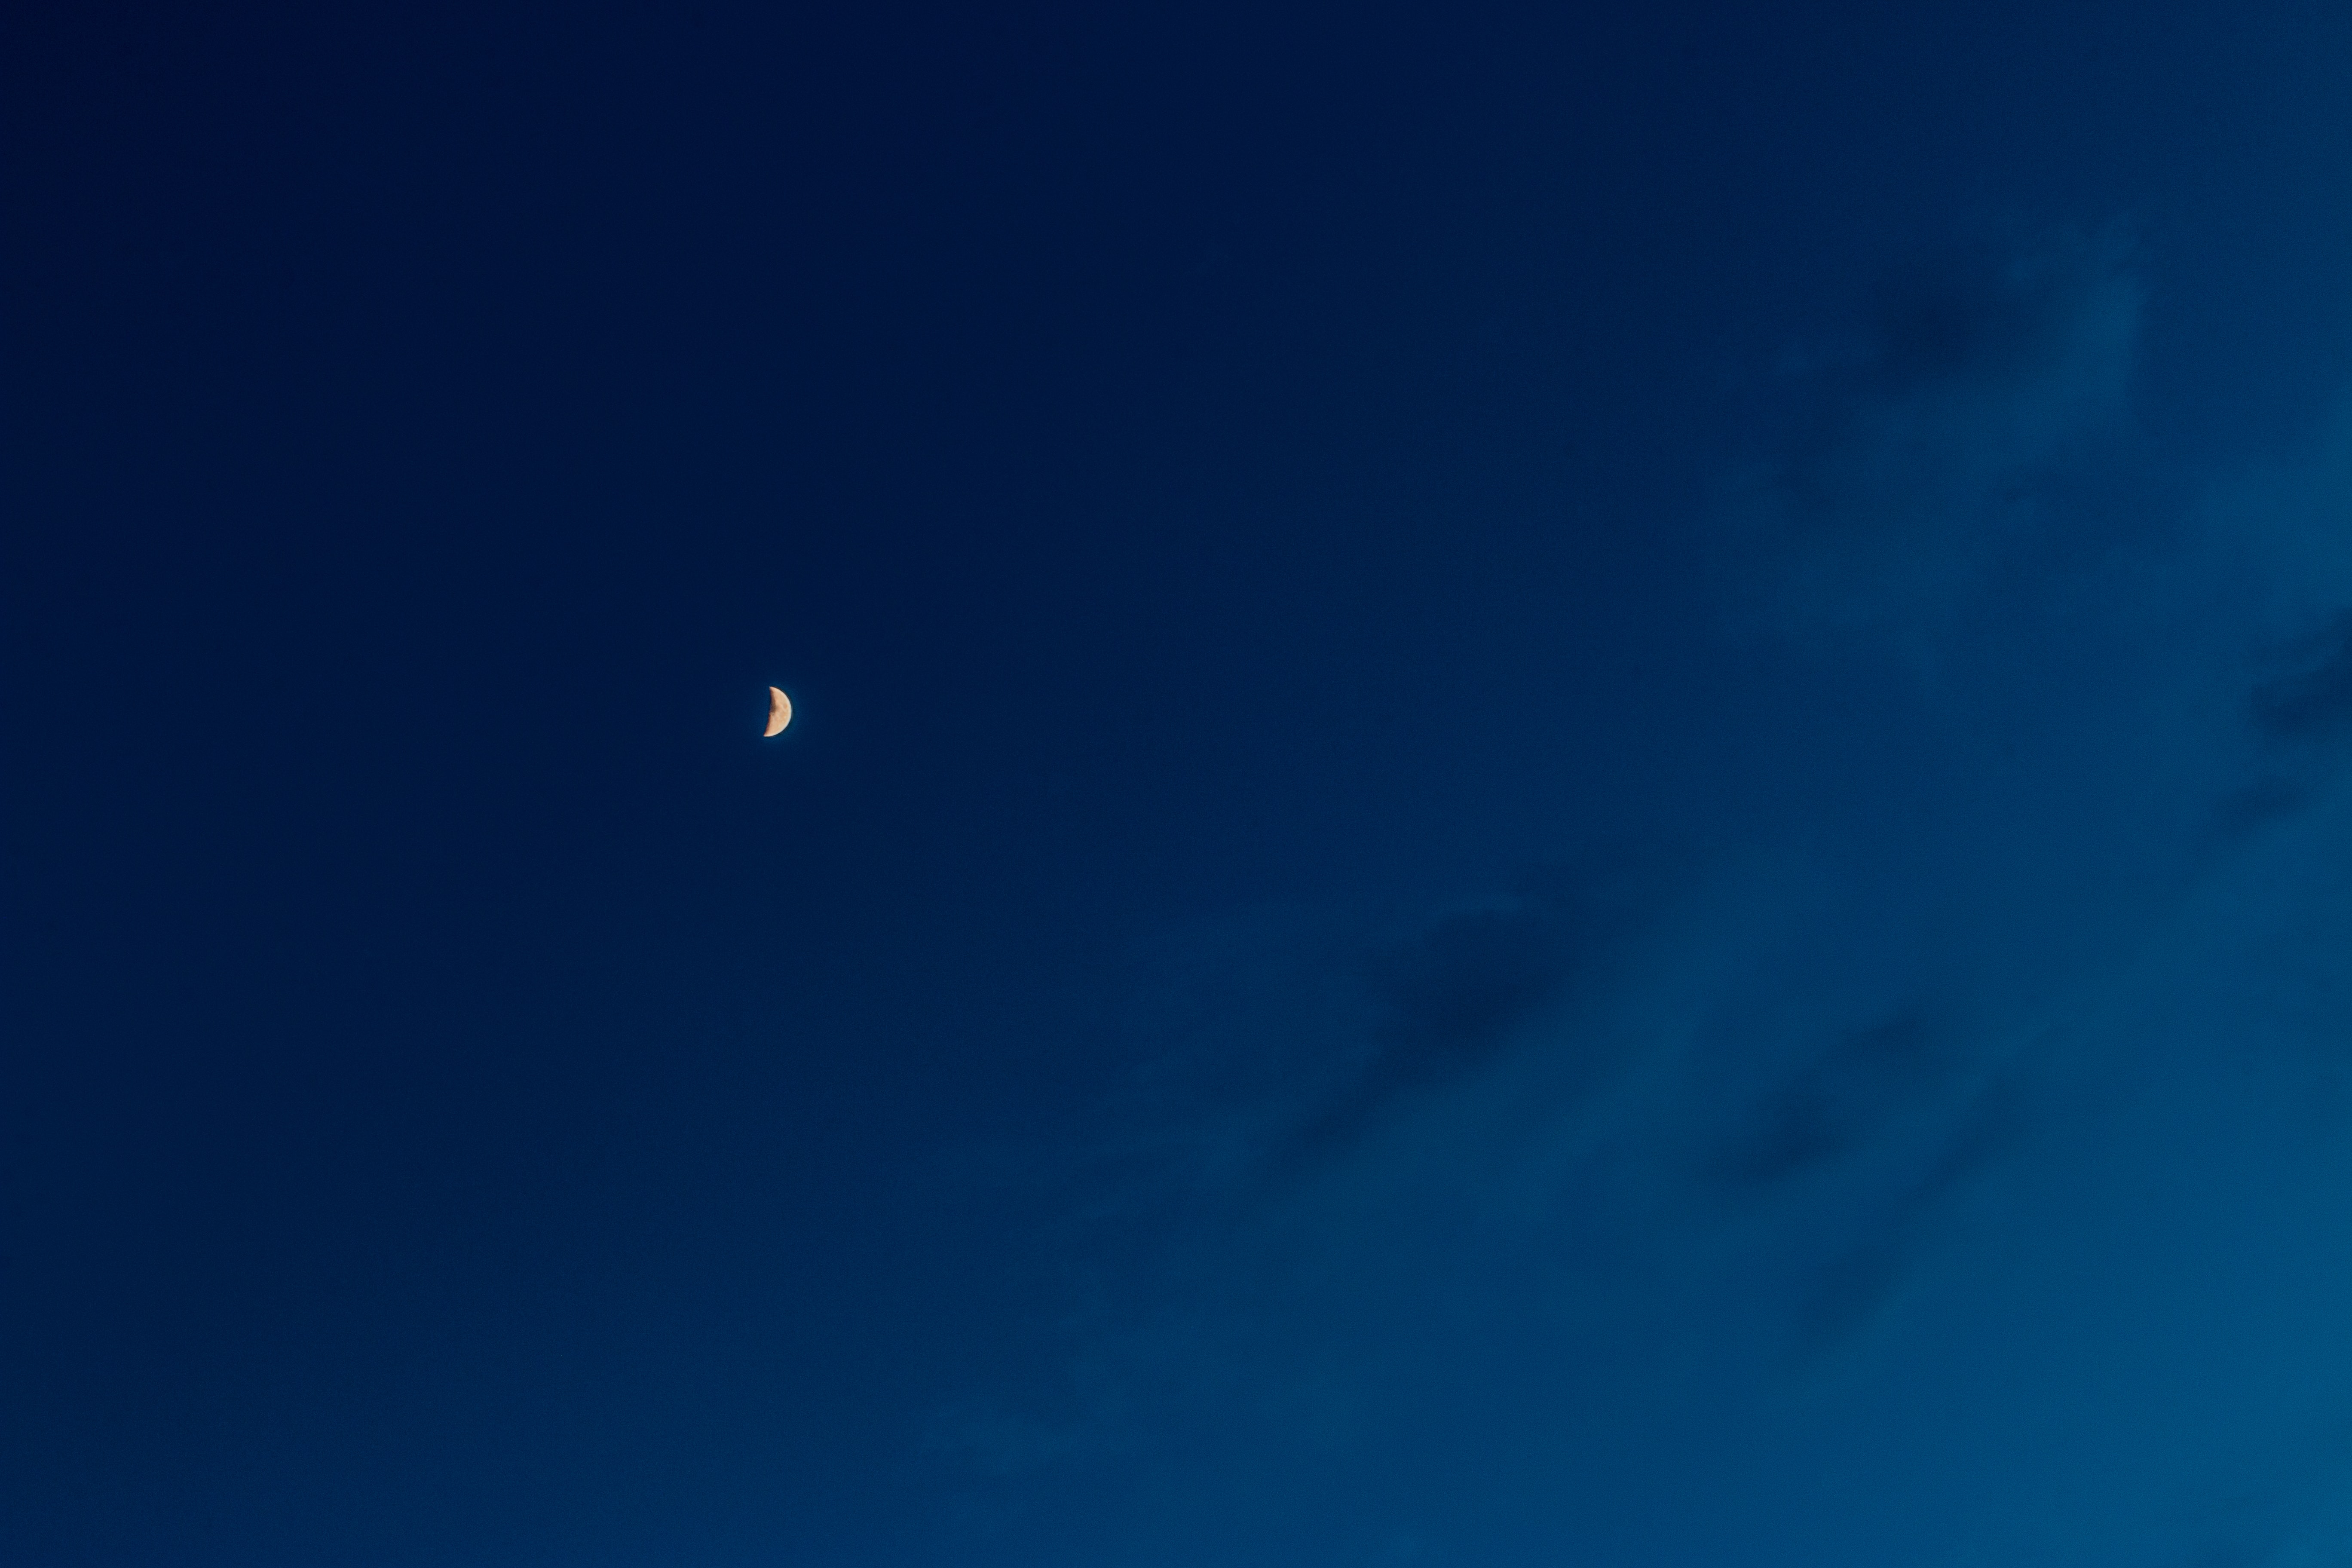 A crescent moon seen near fluffy clouds on an inky blue sky